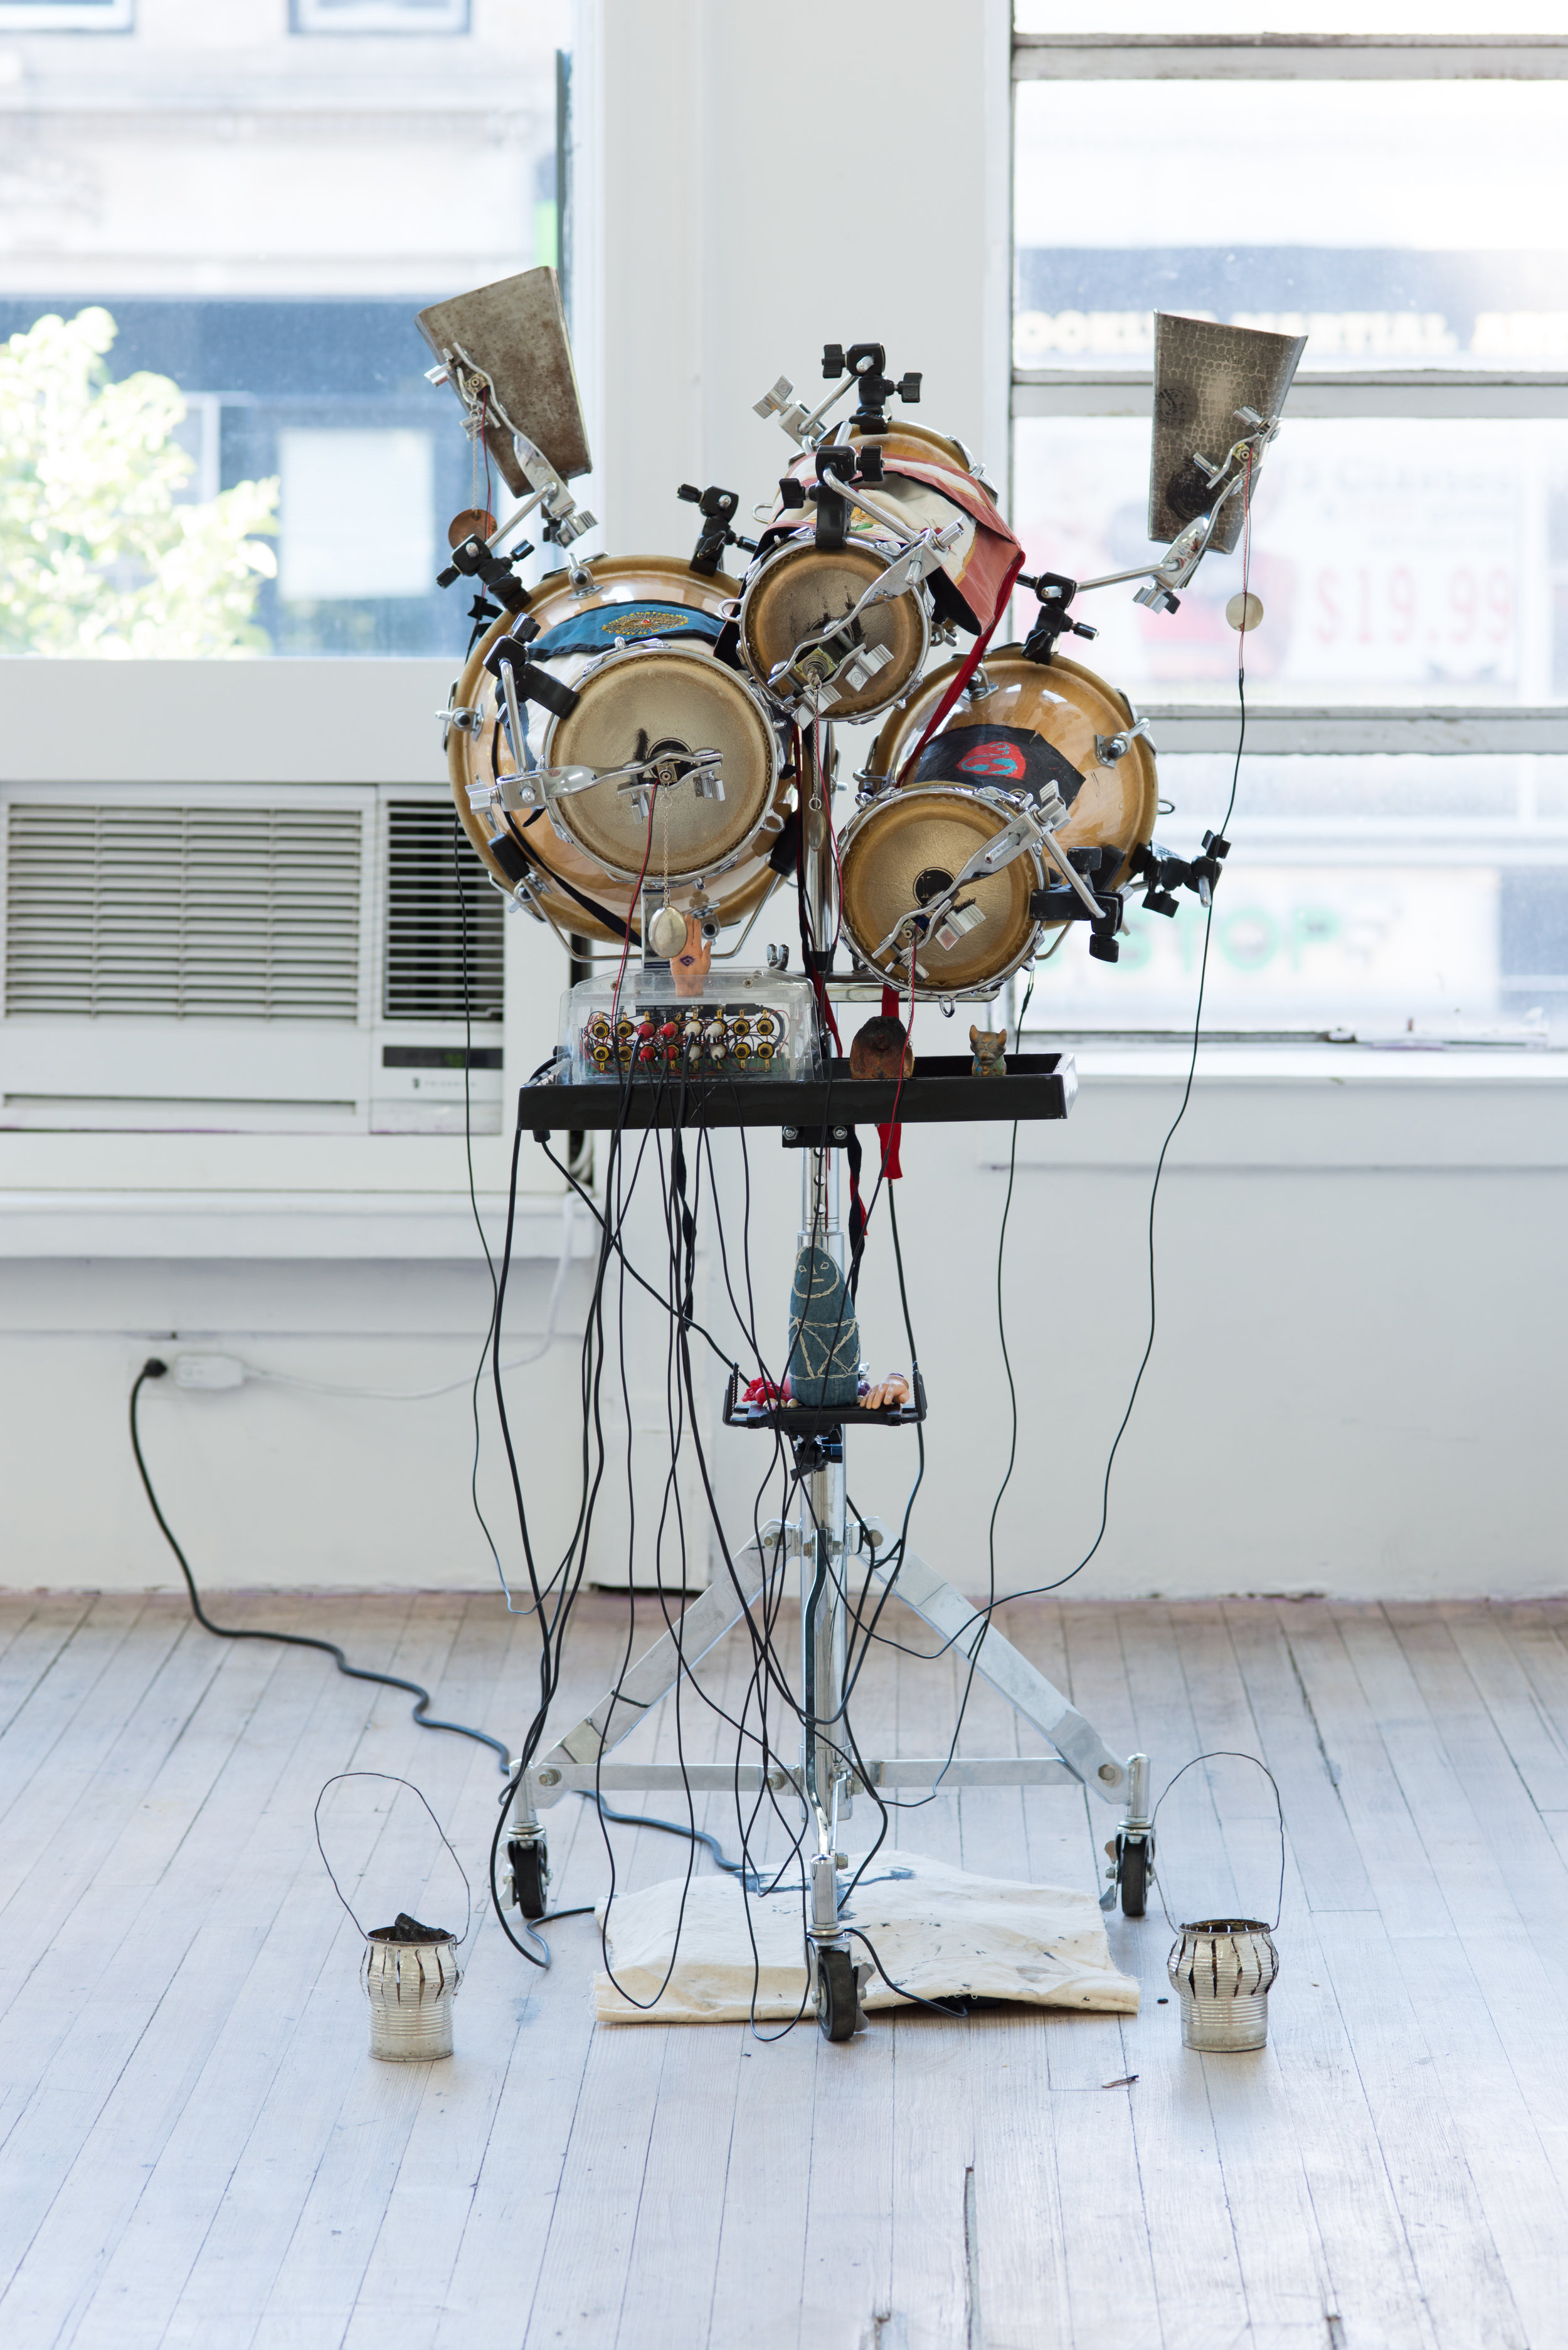 Efrain Rozas   Prosthesis 1 , from the series Myth and Prosthesis, 2018 Custom software, bata drums, solenoid motors, percussion hardware, and assorted found objects Dimensions variable